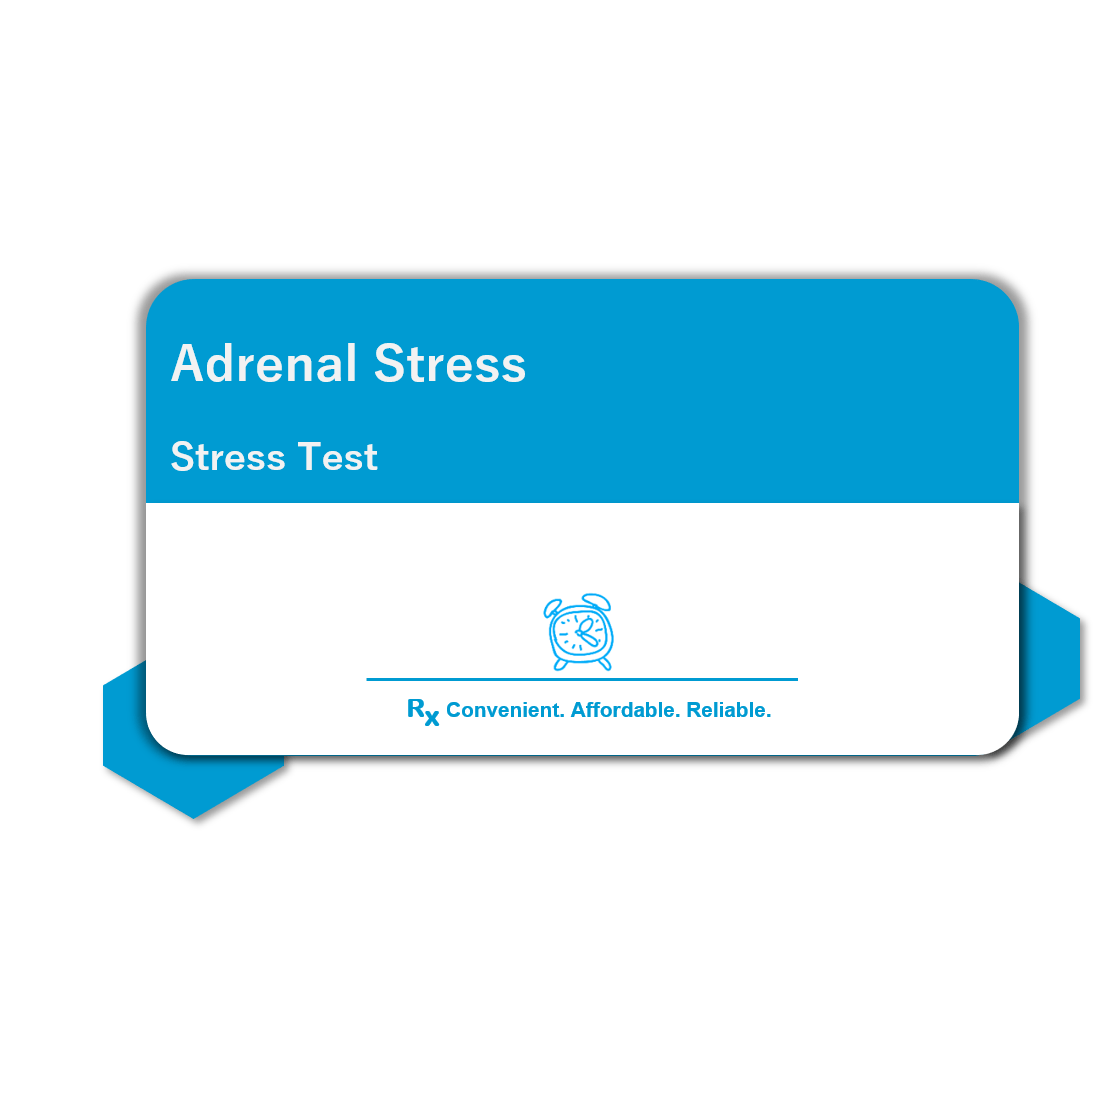 Adrenal Stress Test